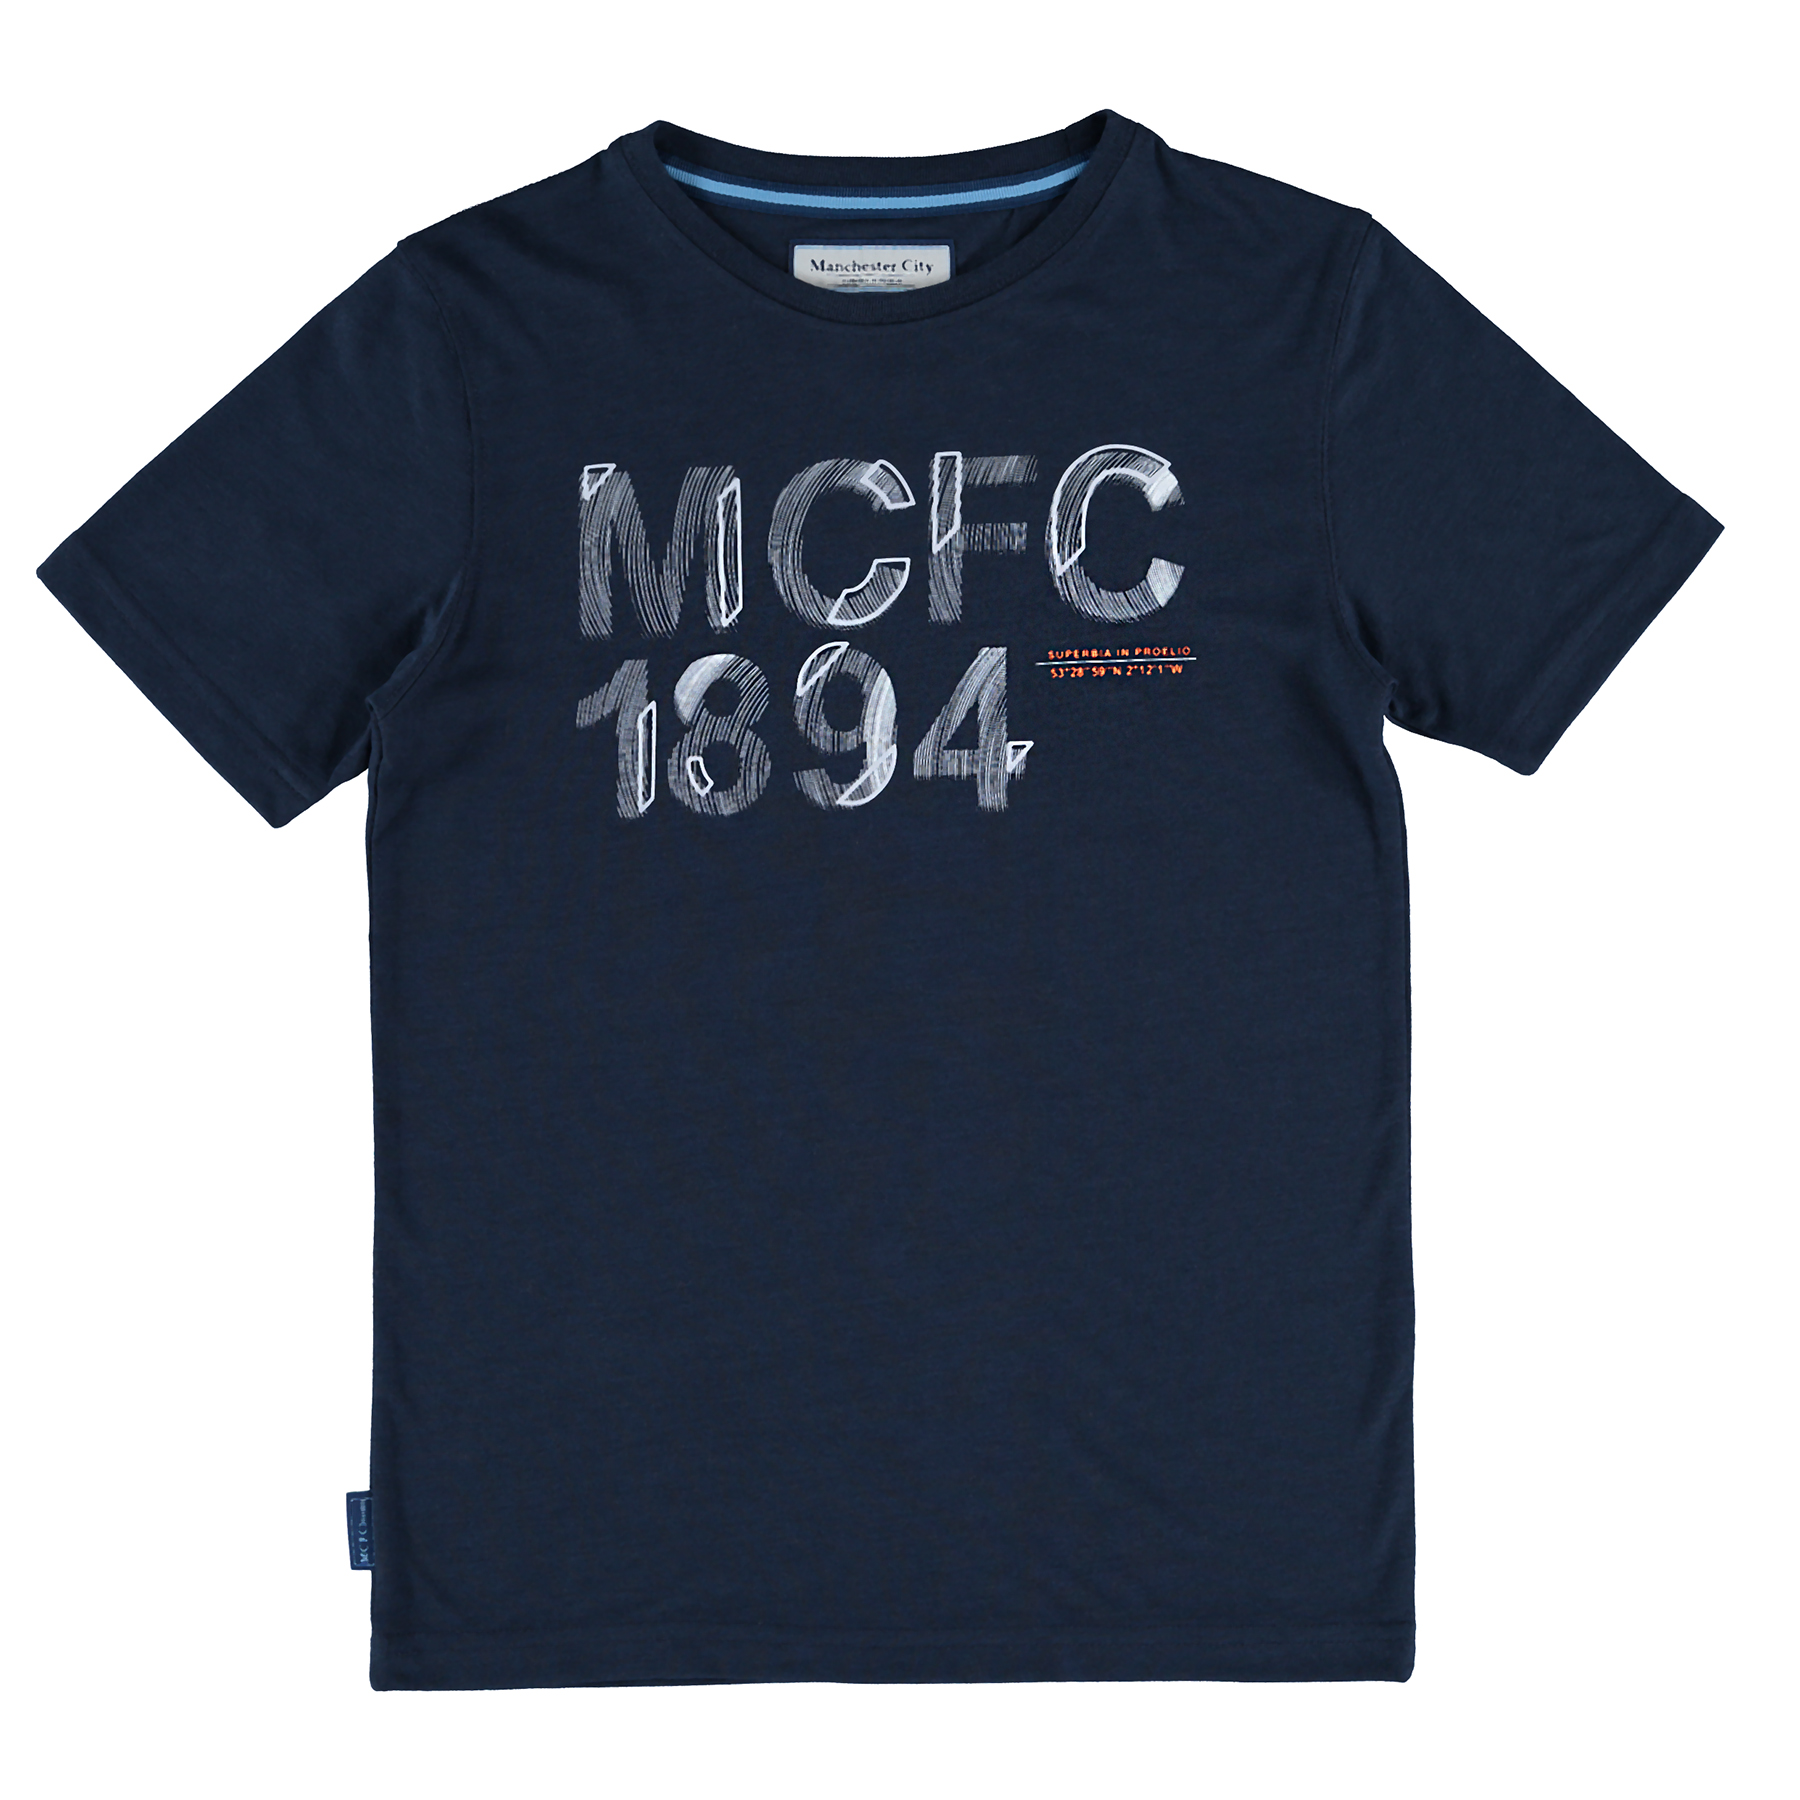 Manchester City Graphic T-Shirt - Navy - Older Boys